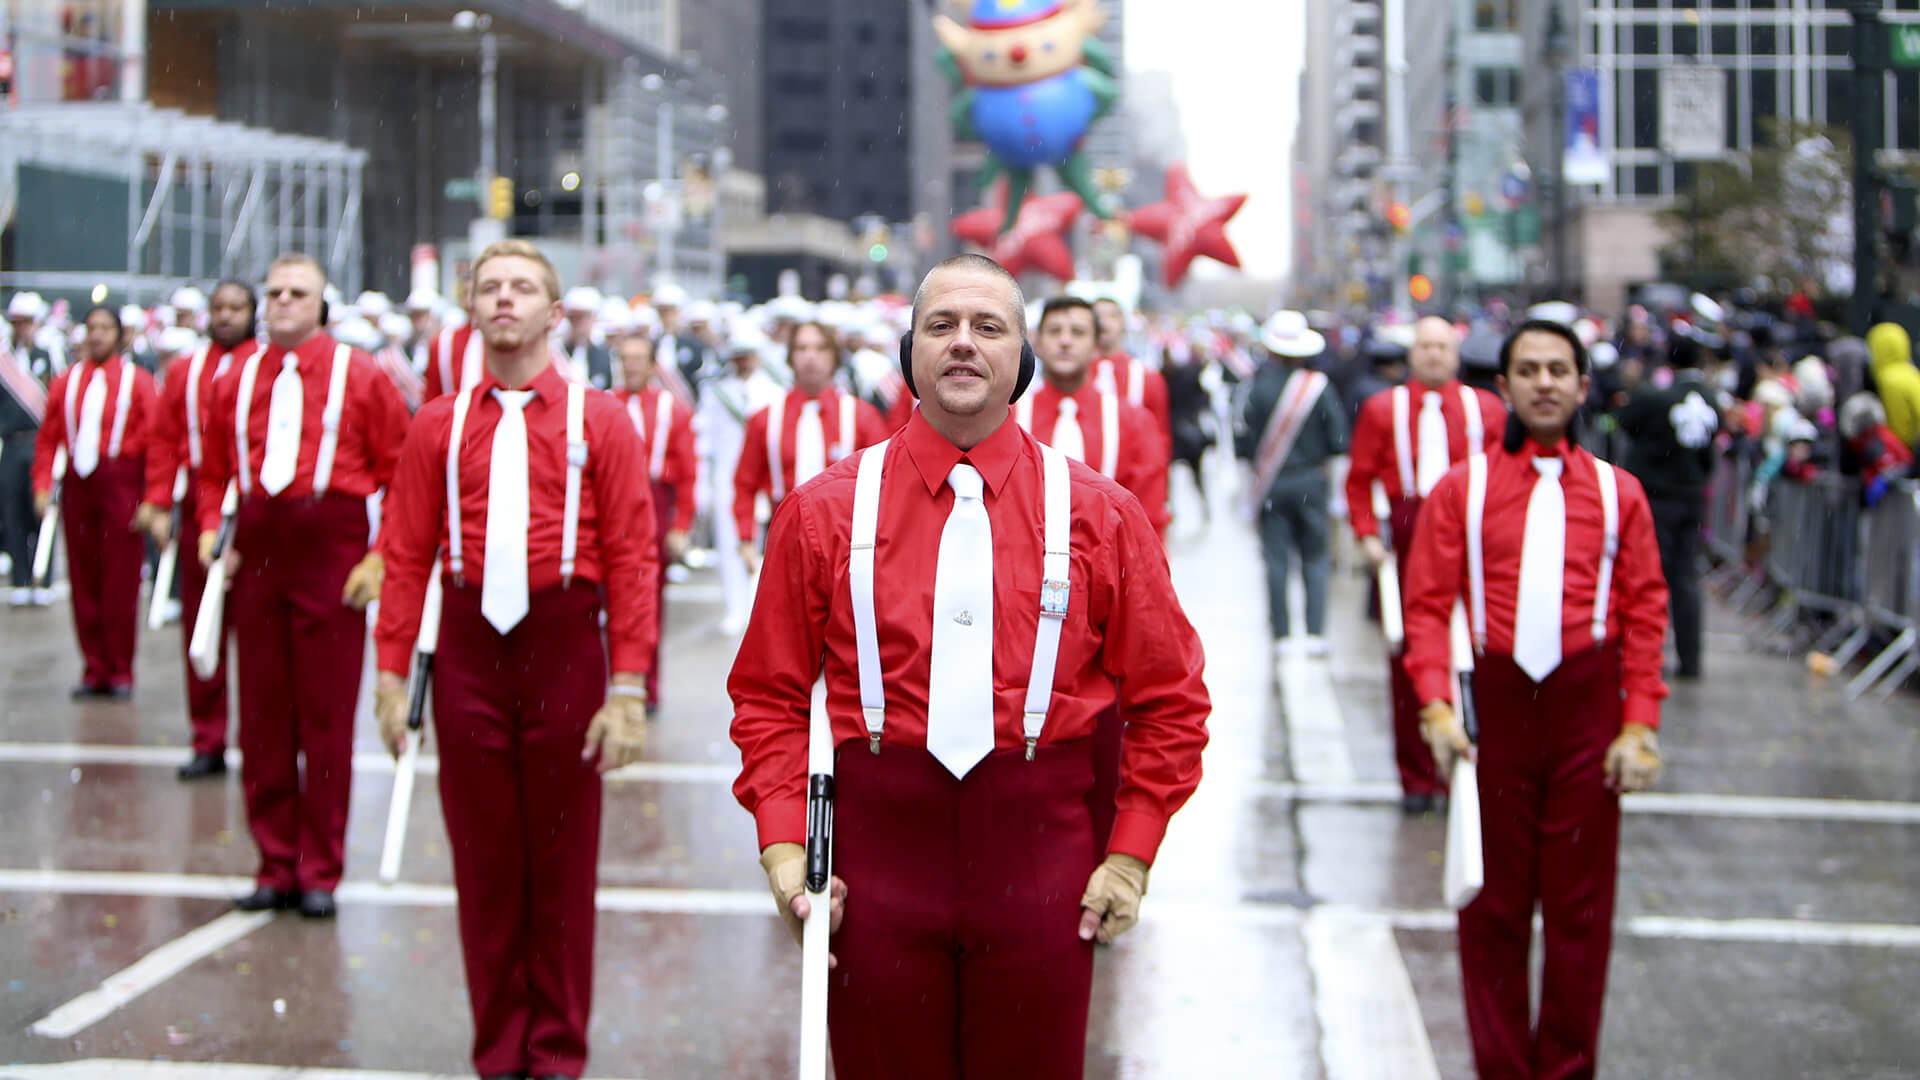 VIDEO: Drum corps in the Macy's Thanksgiving Day Parade